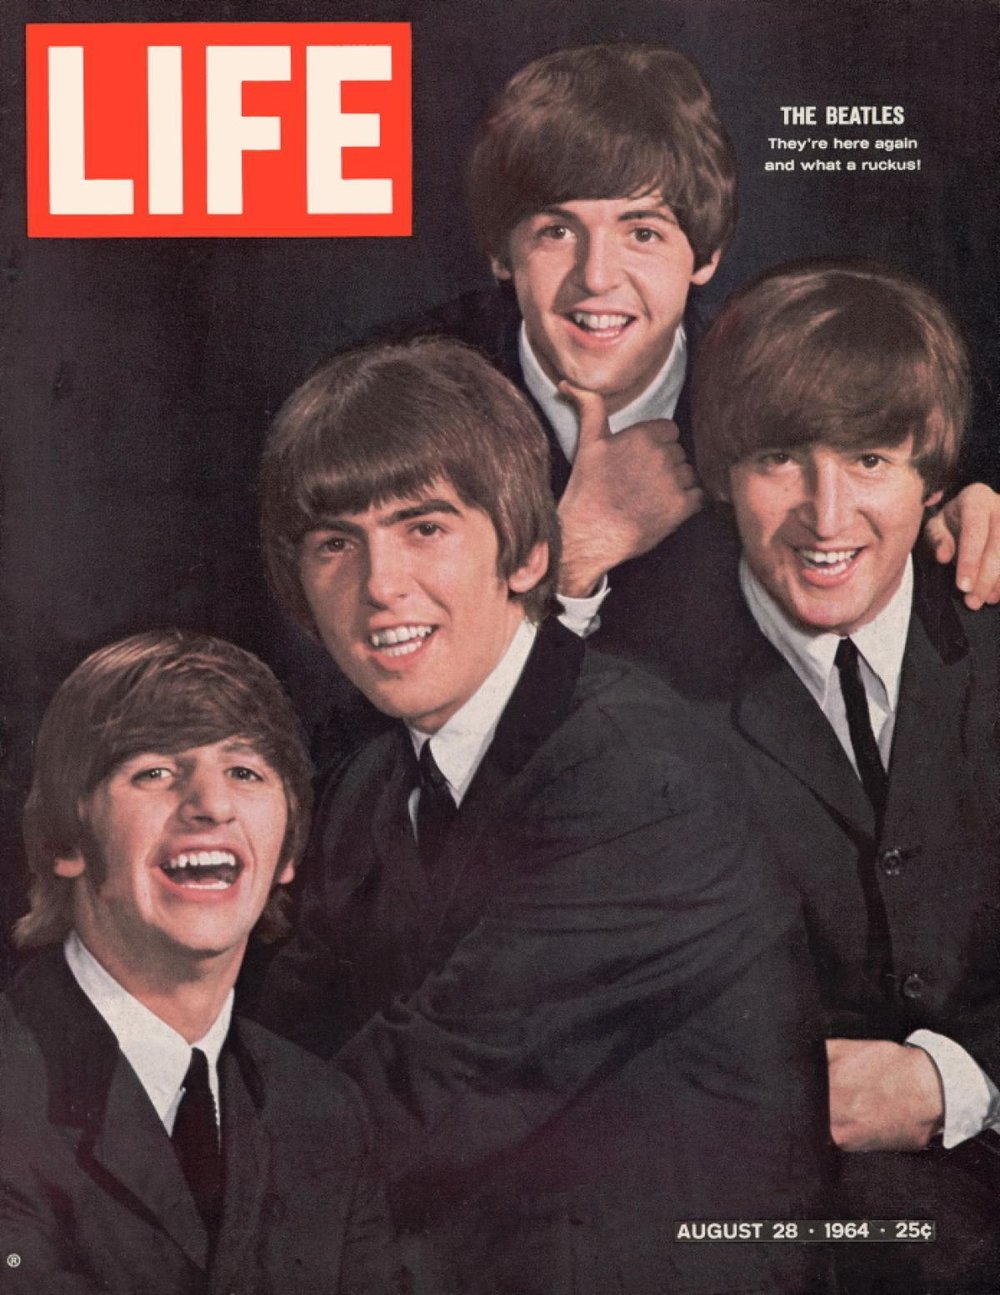 The Beatles on the cover of LIFE Magazine, August 28th 1964.